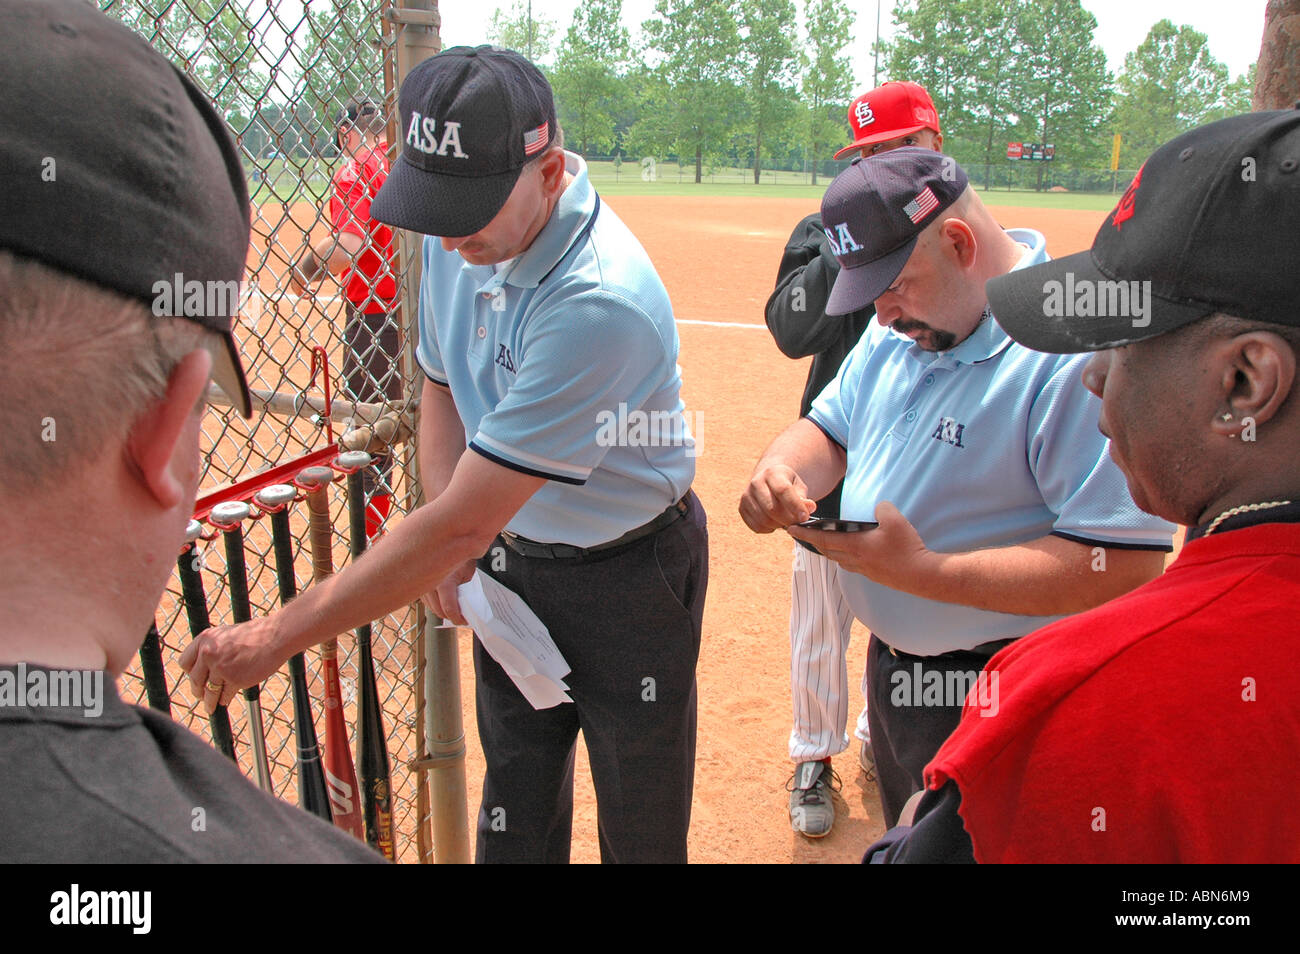 Softball Umpires Asa In Us Stock Photos & Softball Umpires